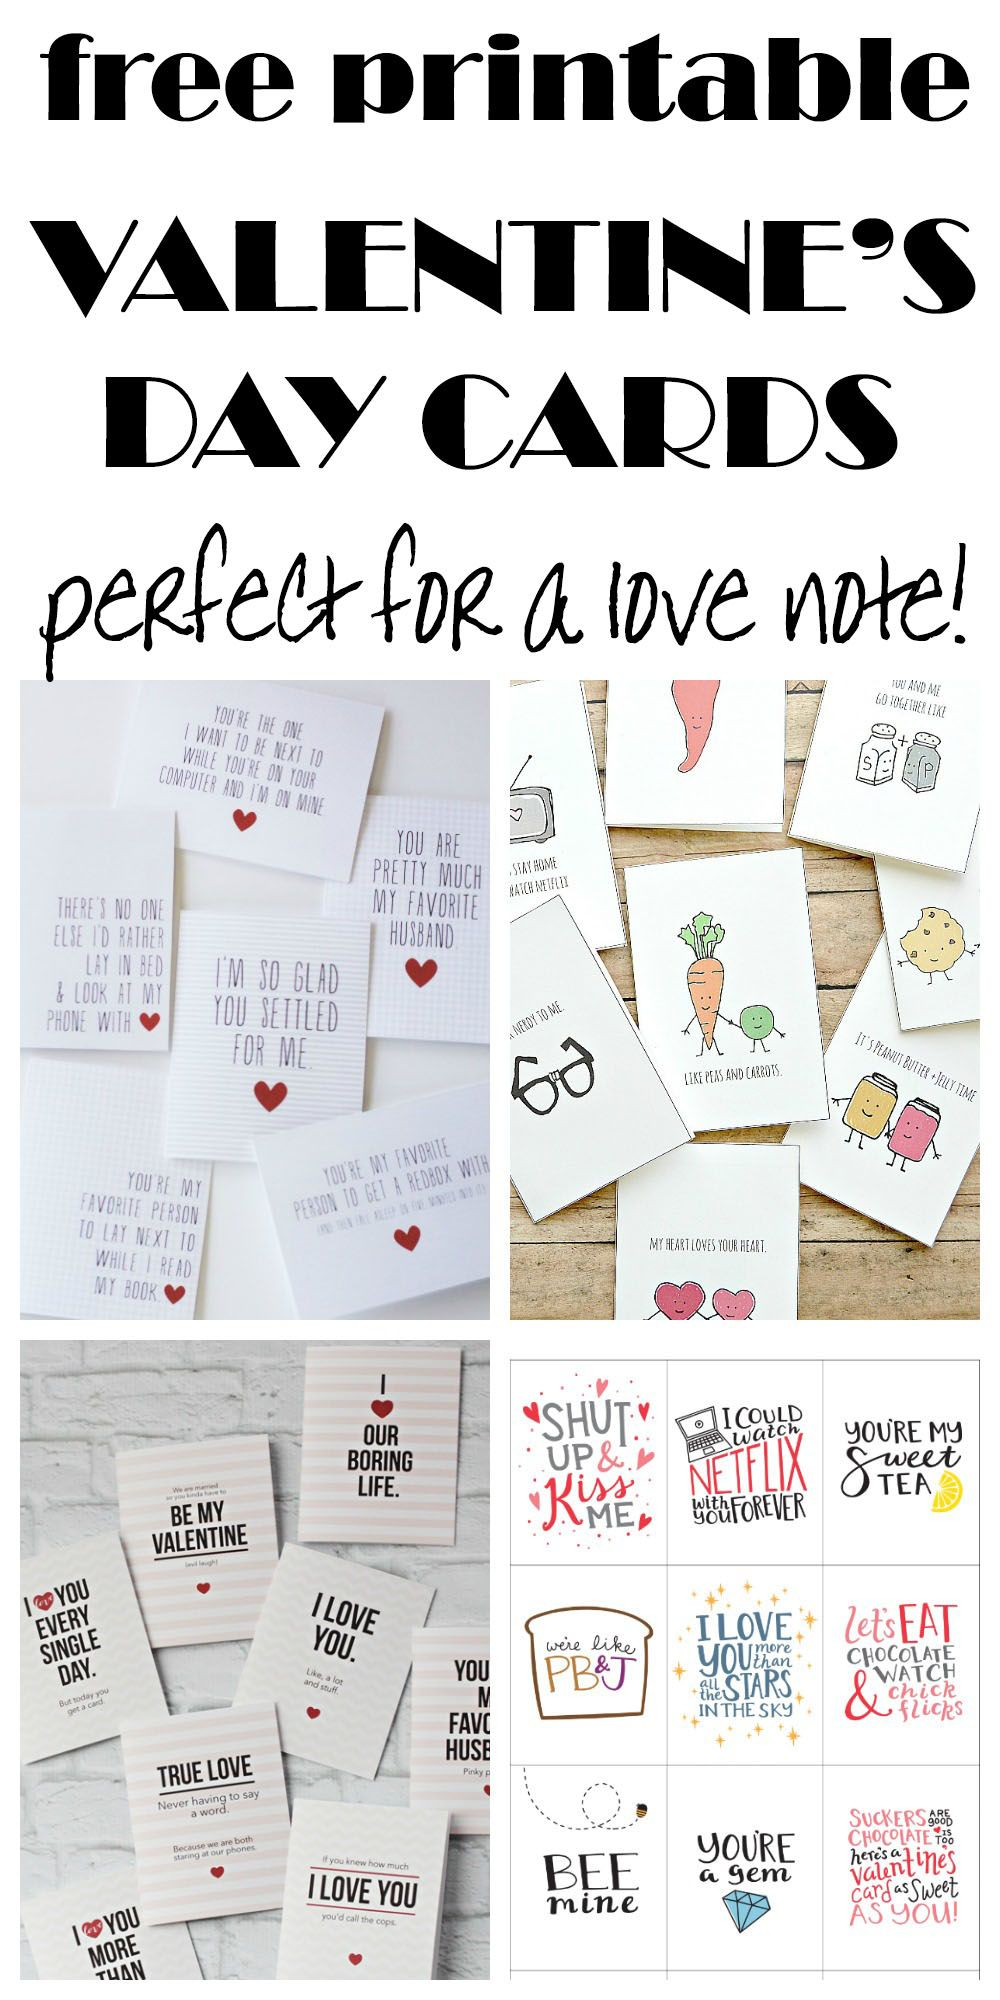 Funny And Cute, Free Printable Cards Perfect For A Love Note - Free Printable Love Cards